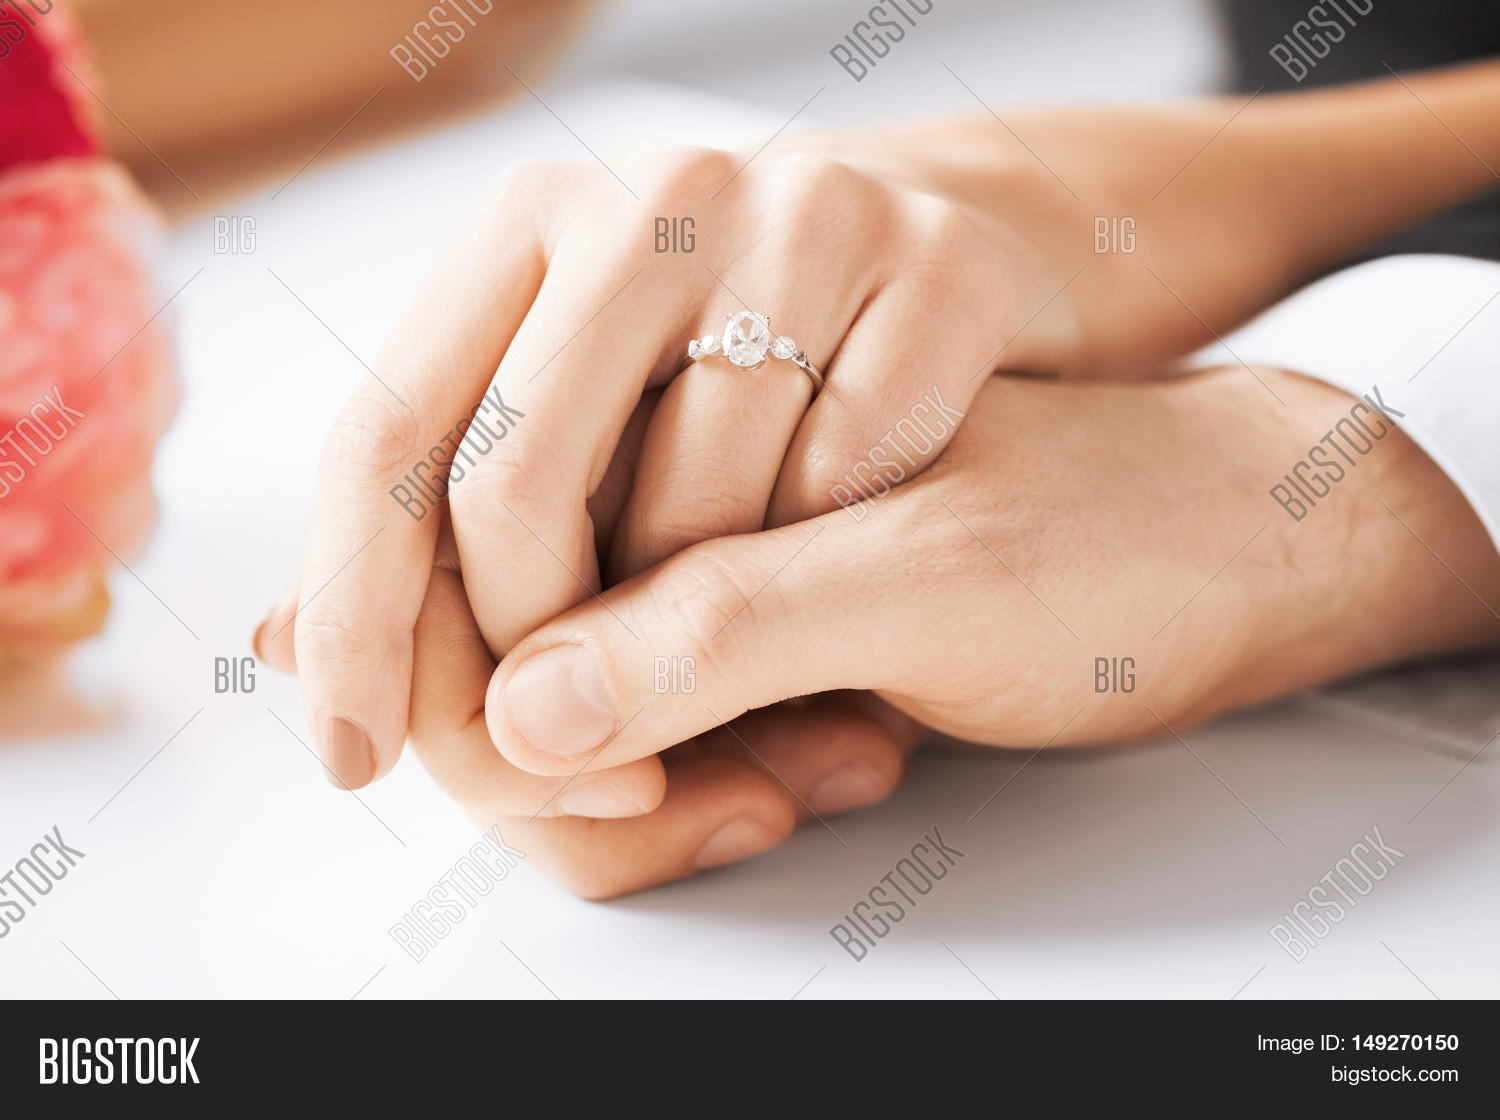 Picture Man Woman Holding Hands Image Photo Bigstock